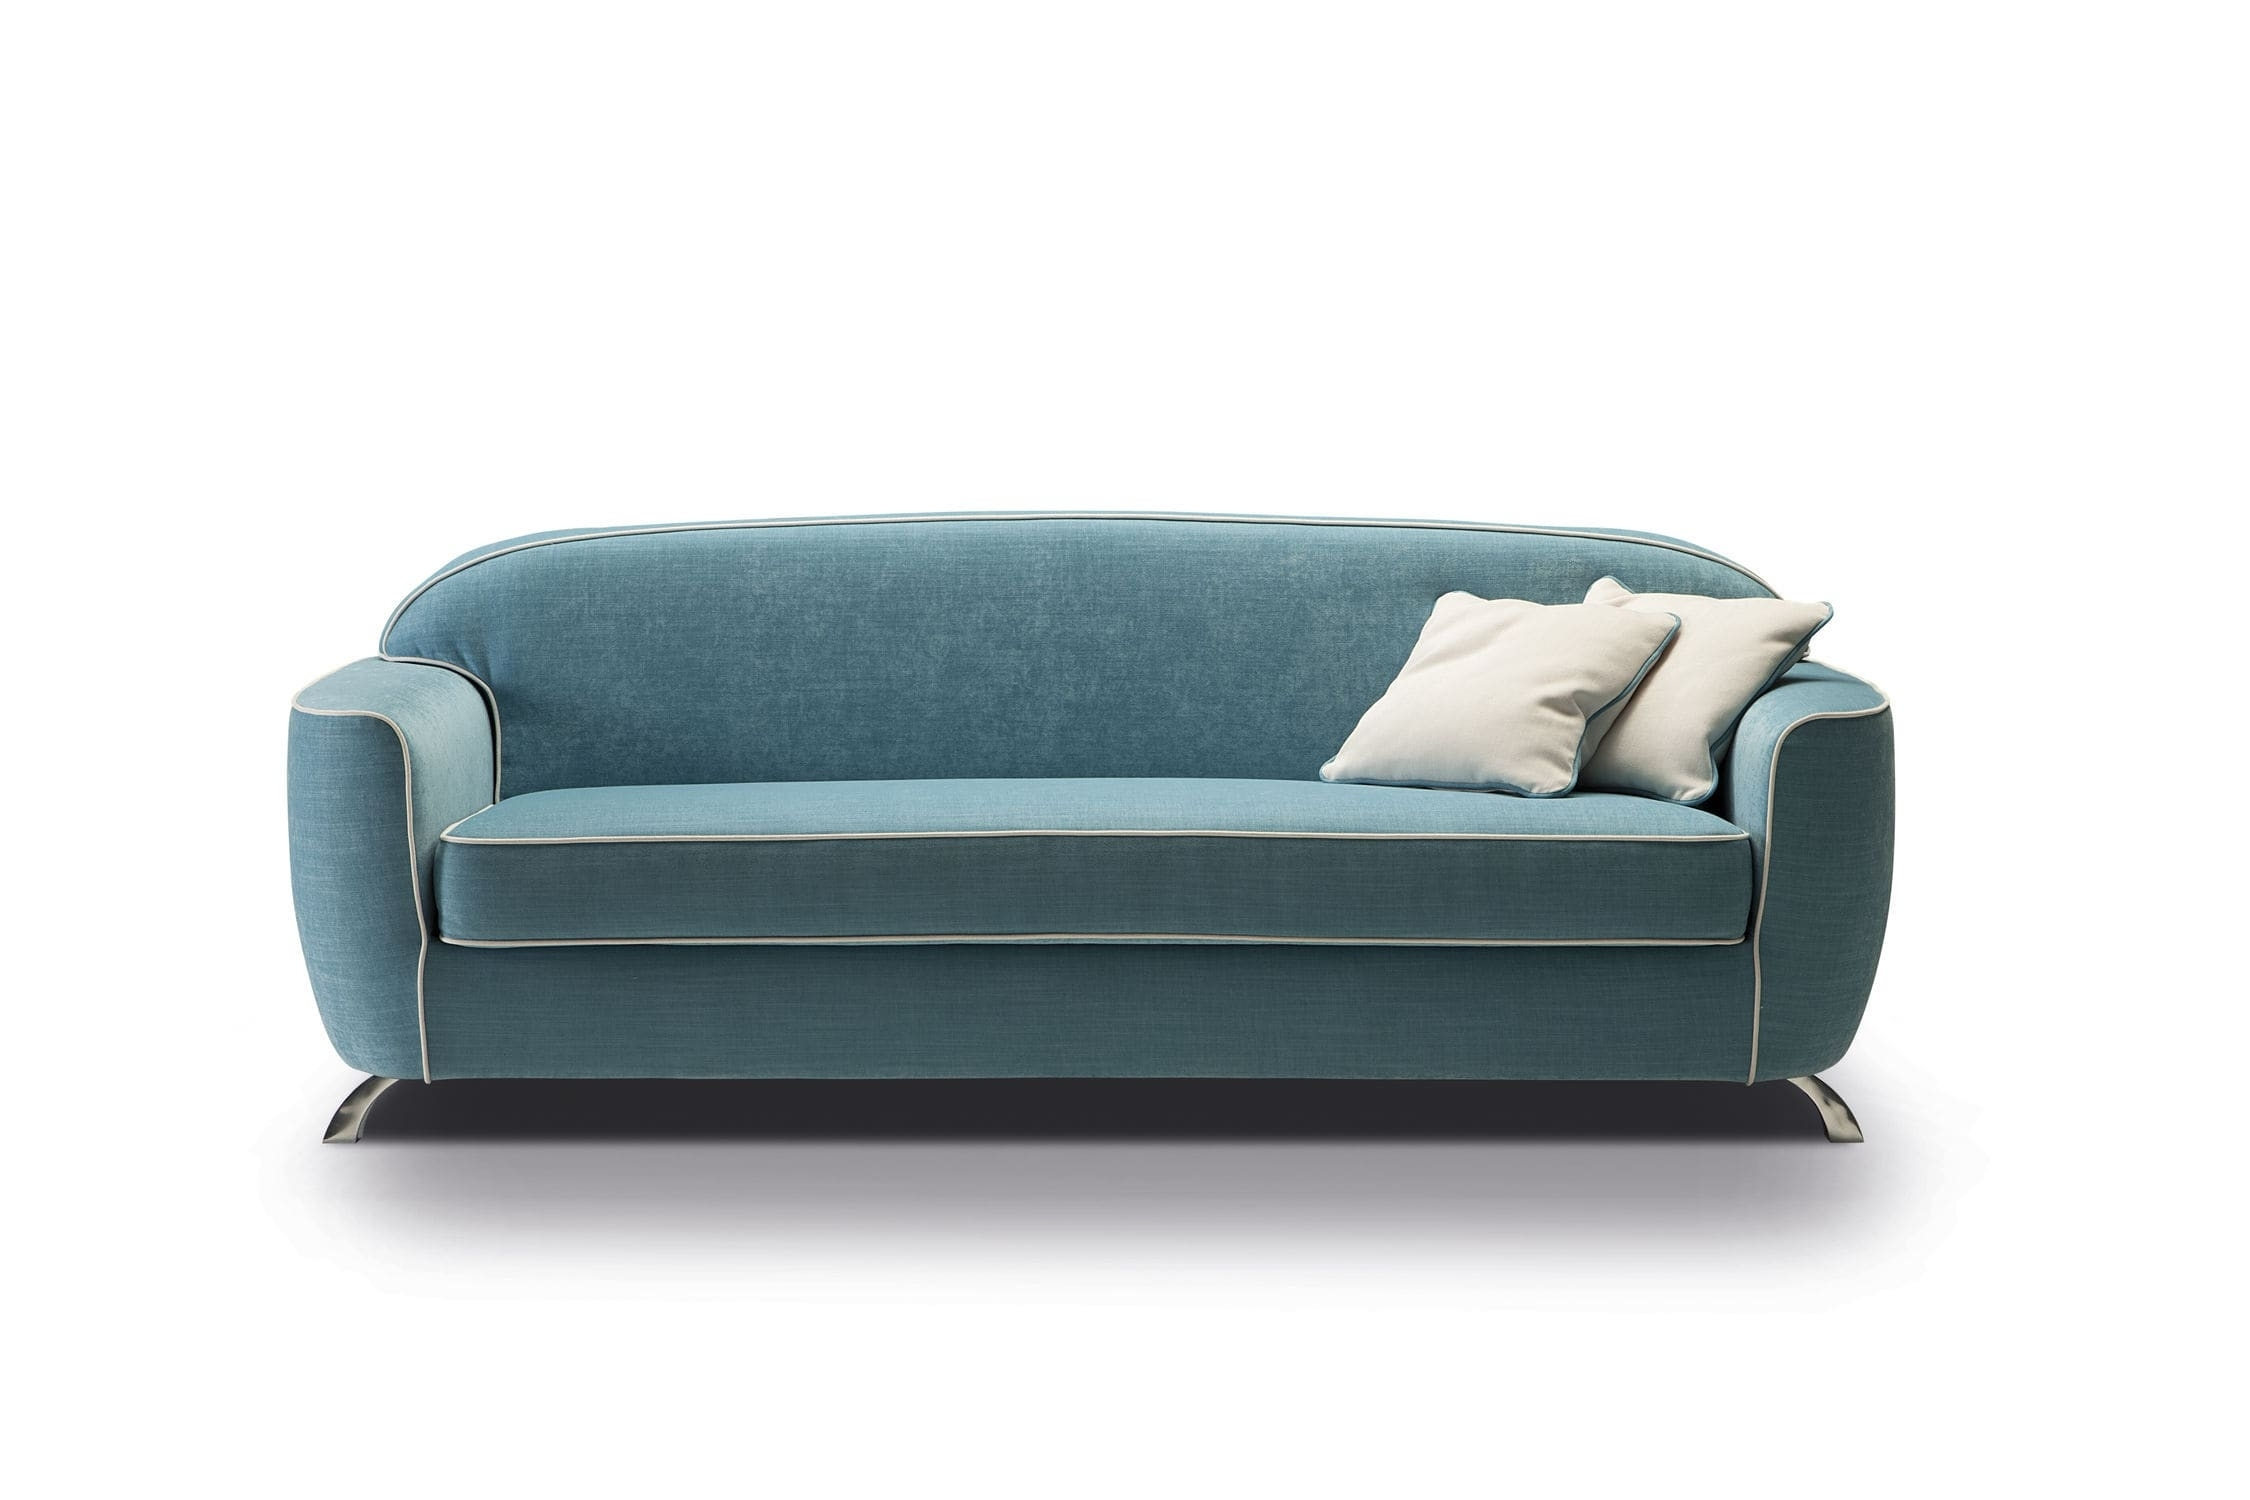 Sofa Bed / Contemporary / Fabric / With Washable Removable Cover Regarding Sofas With Washable Covers (View 4 of 10)